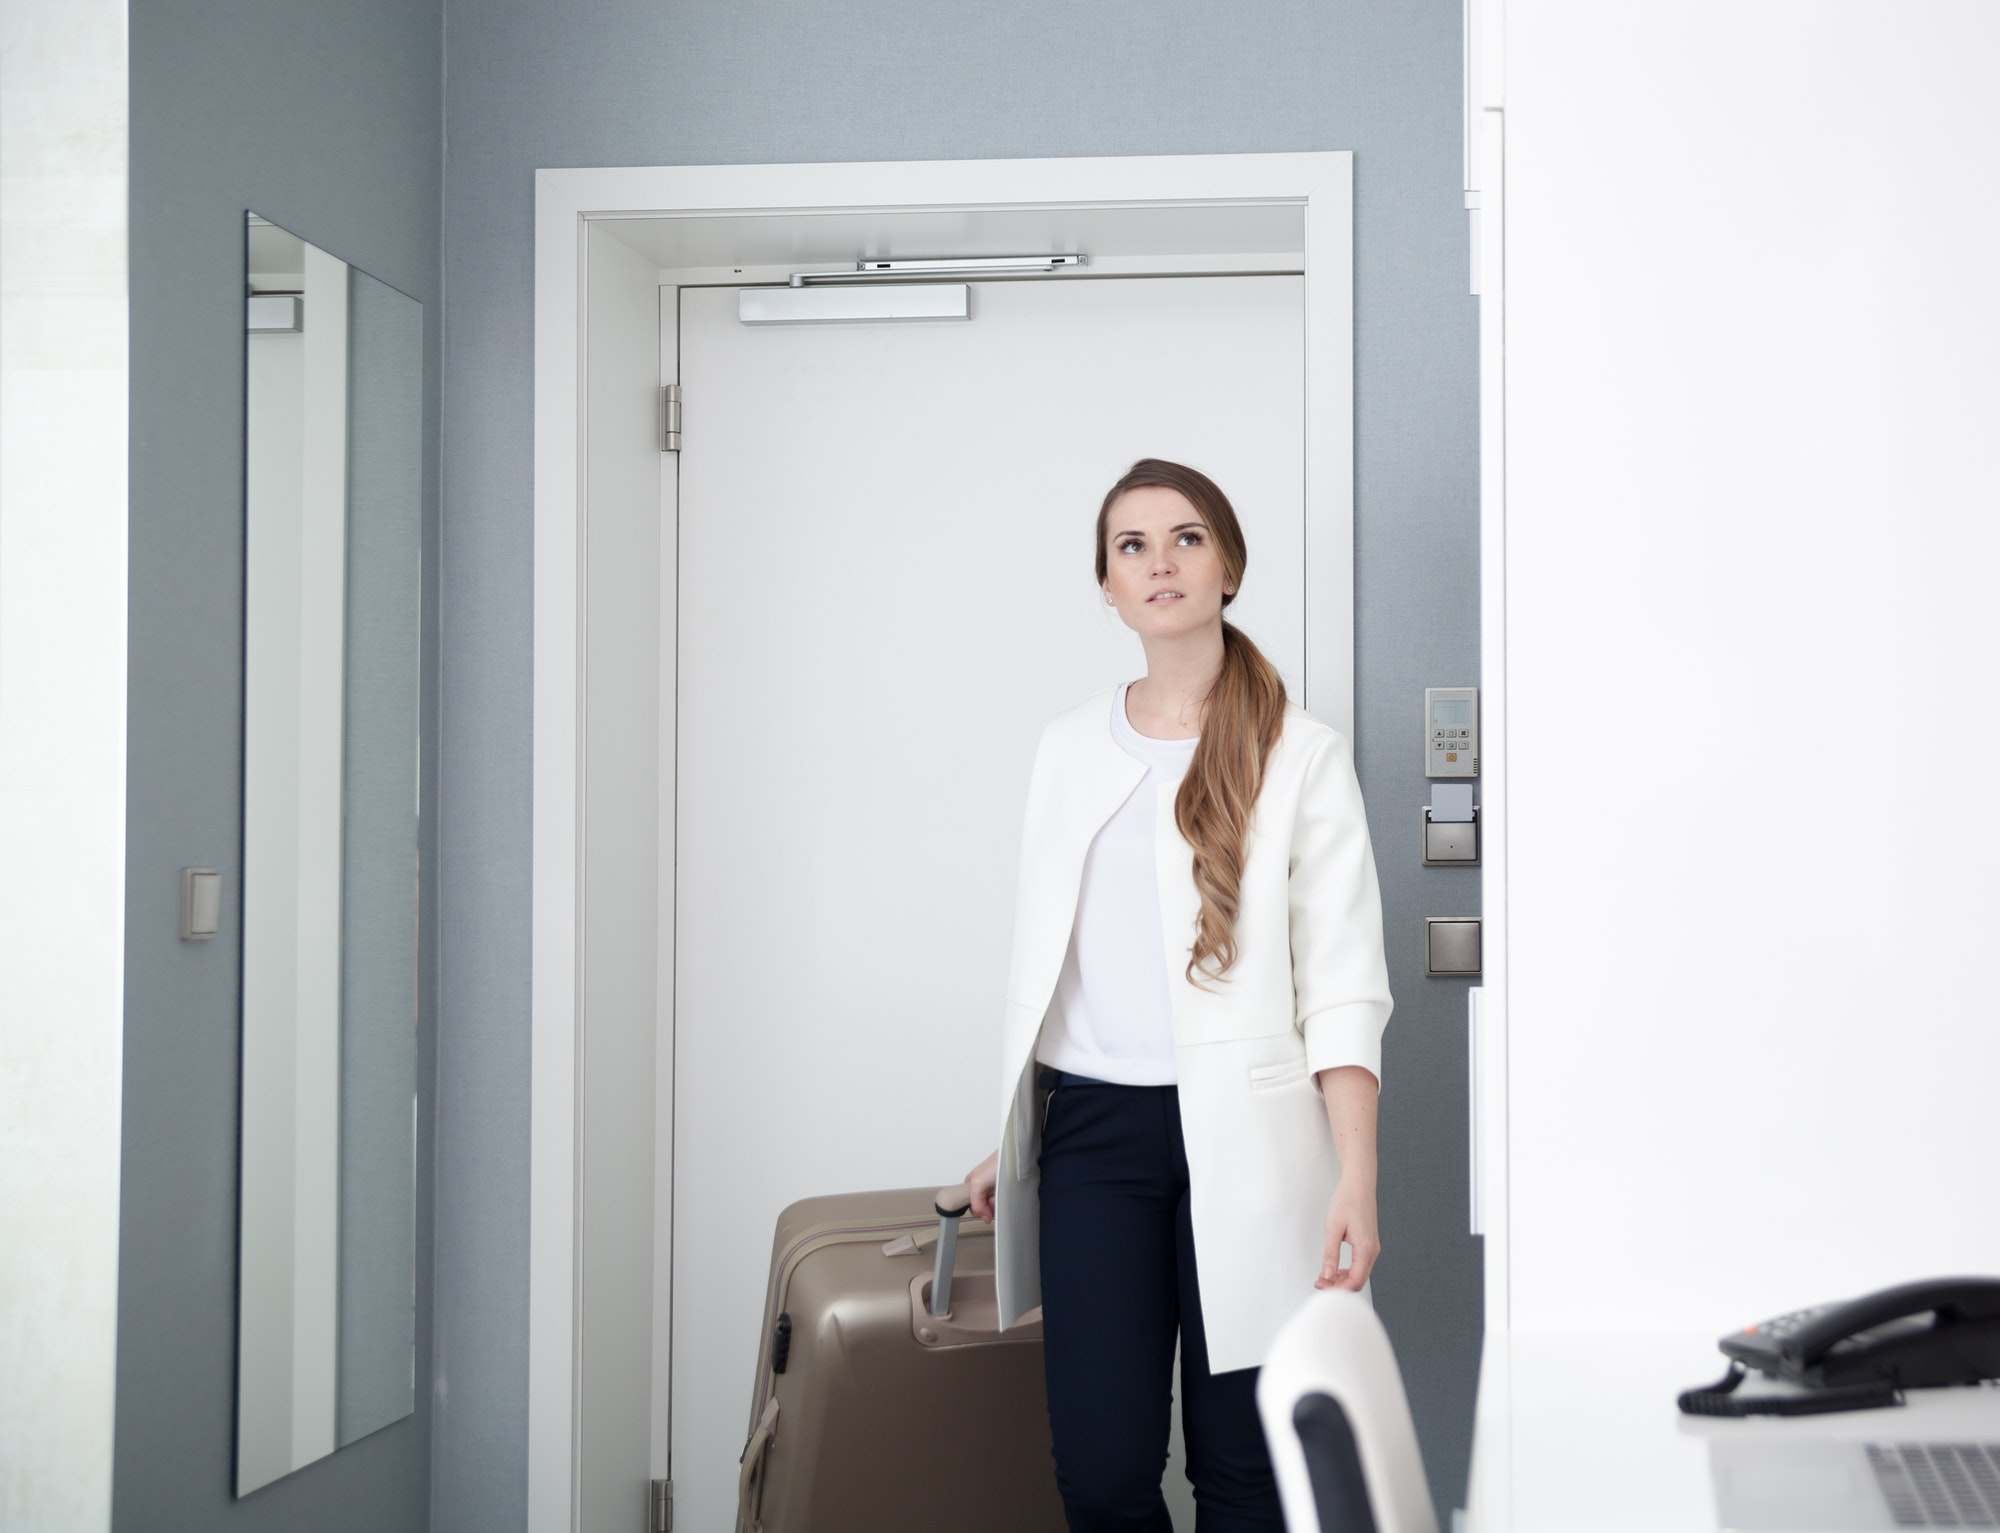 Woman pulling suitcase in modern hotel room